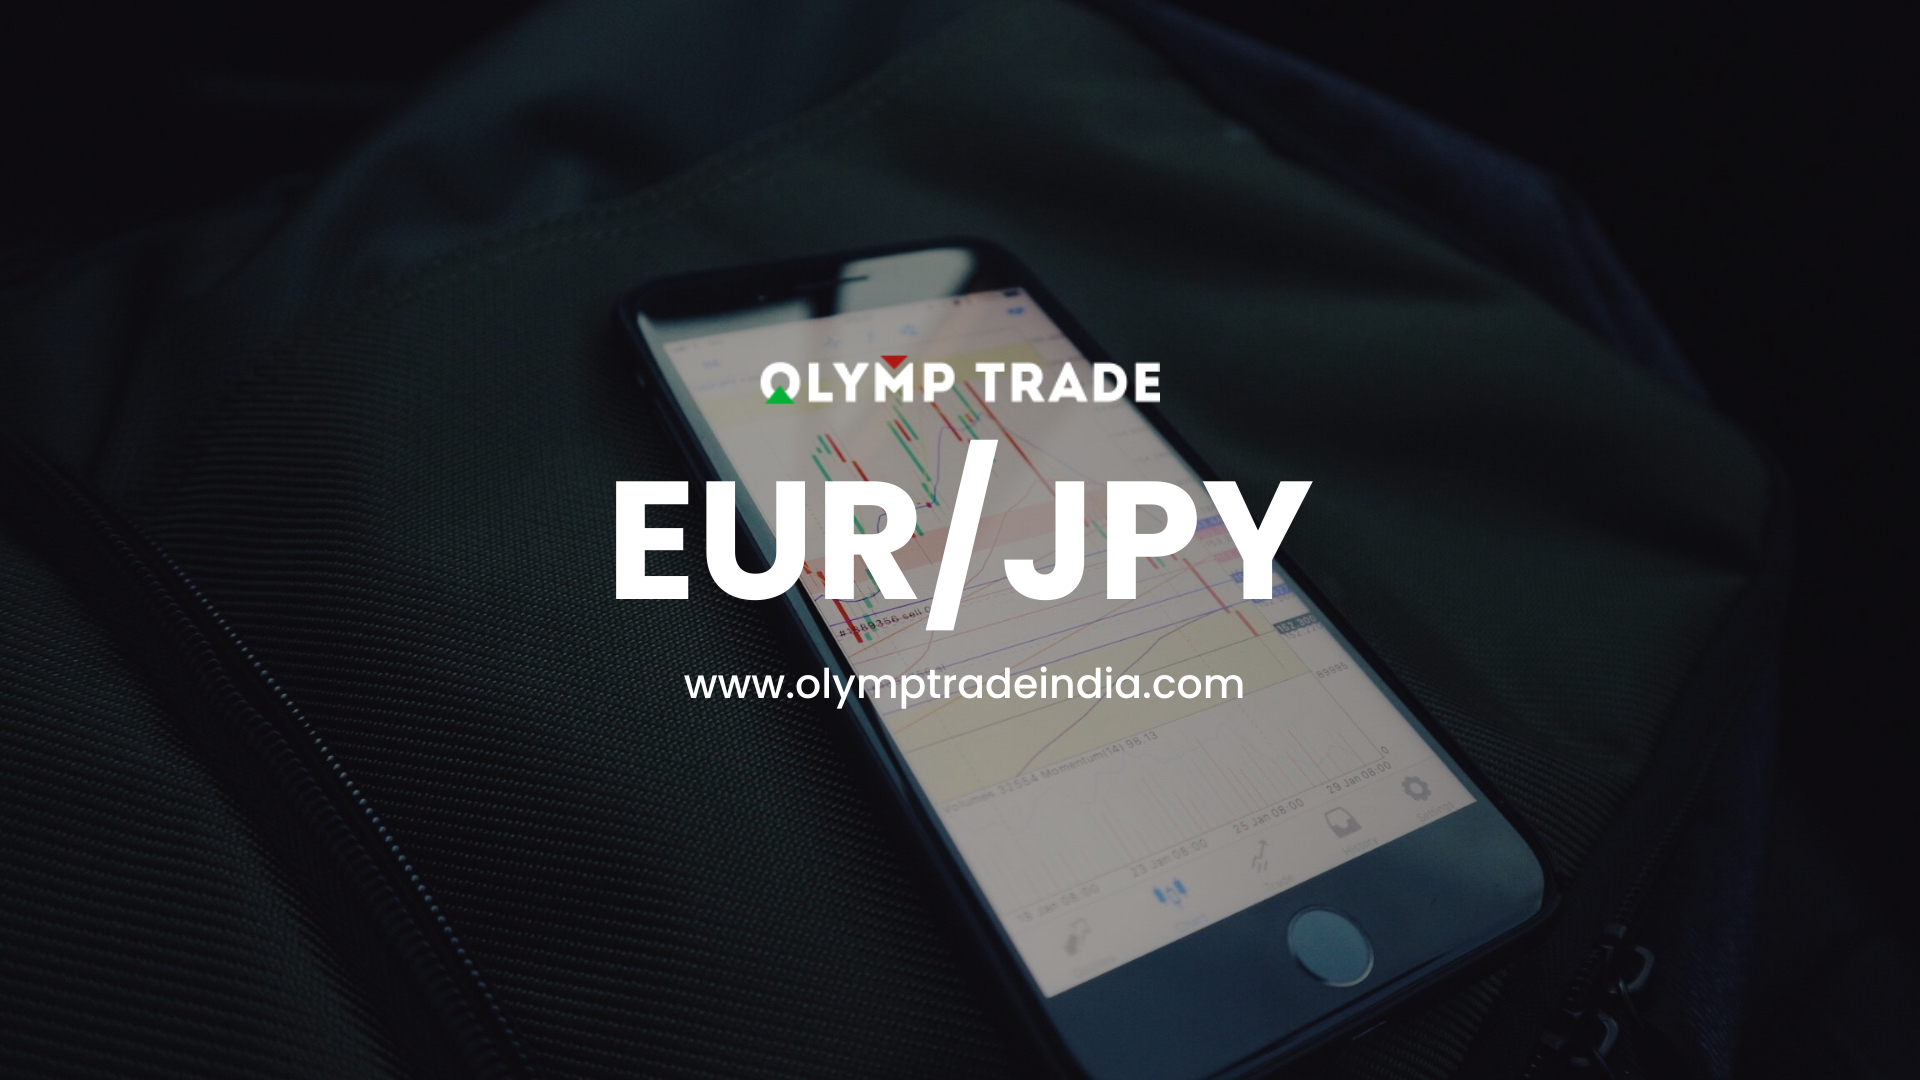 EUR/JPY Intraday Market Outlook For Traders